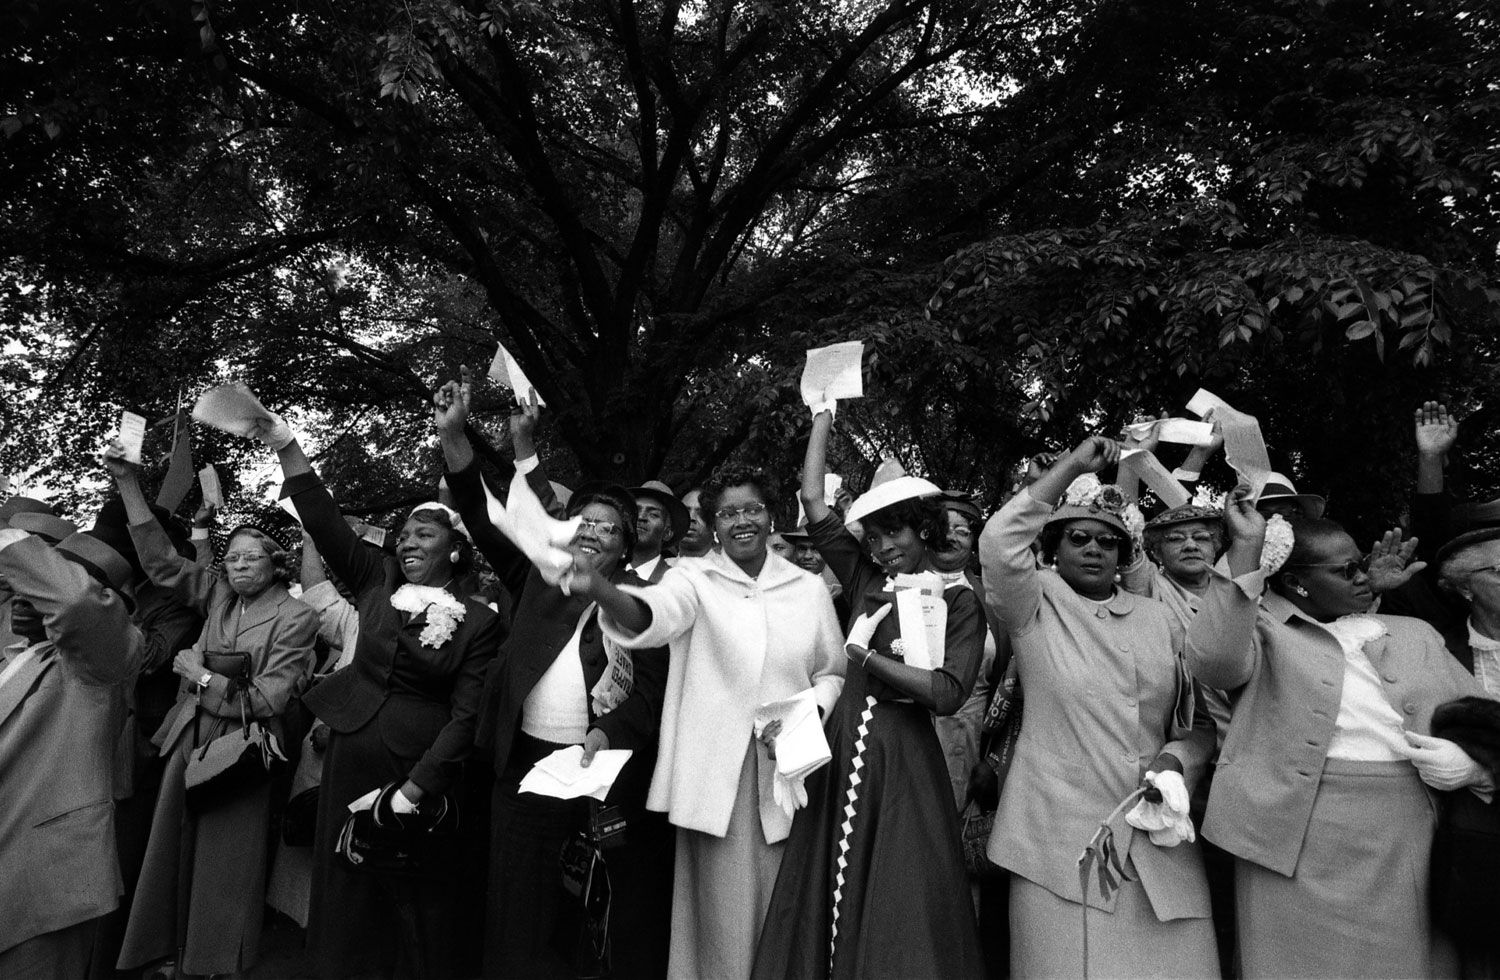 Civil Rights Movement 1957. Women supporters of Martin Luther King's prayer Pilgrimage.